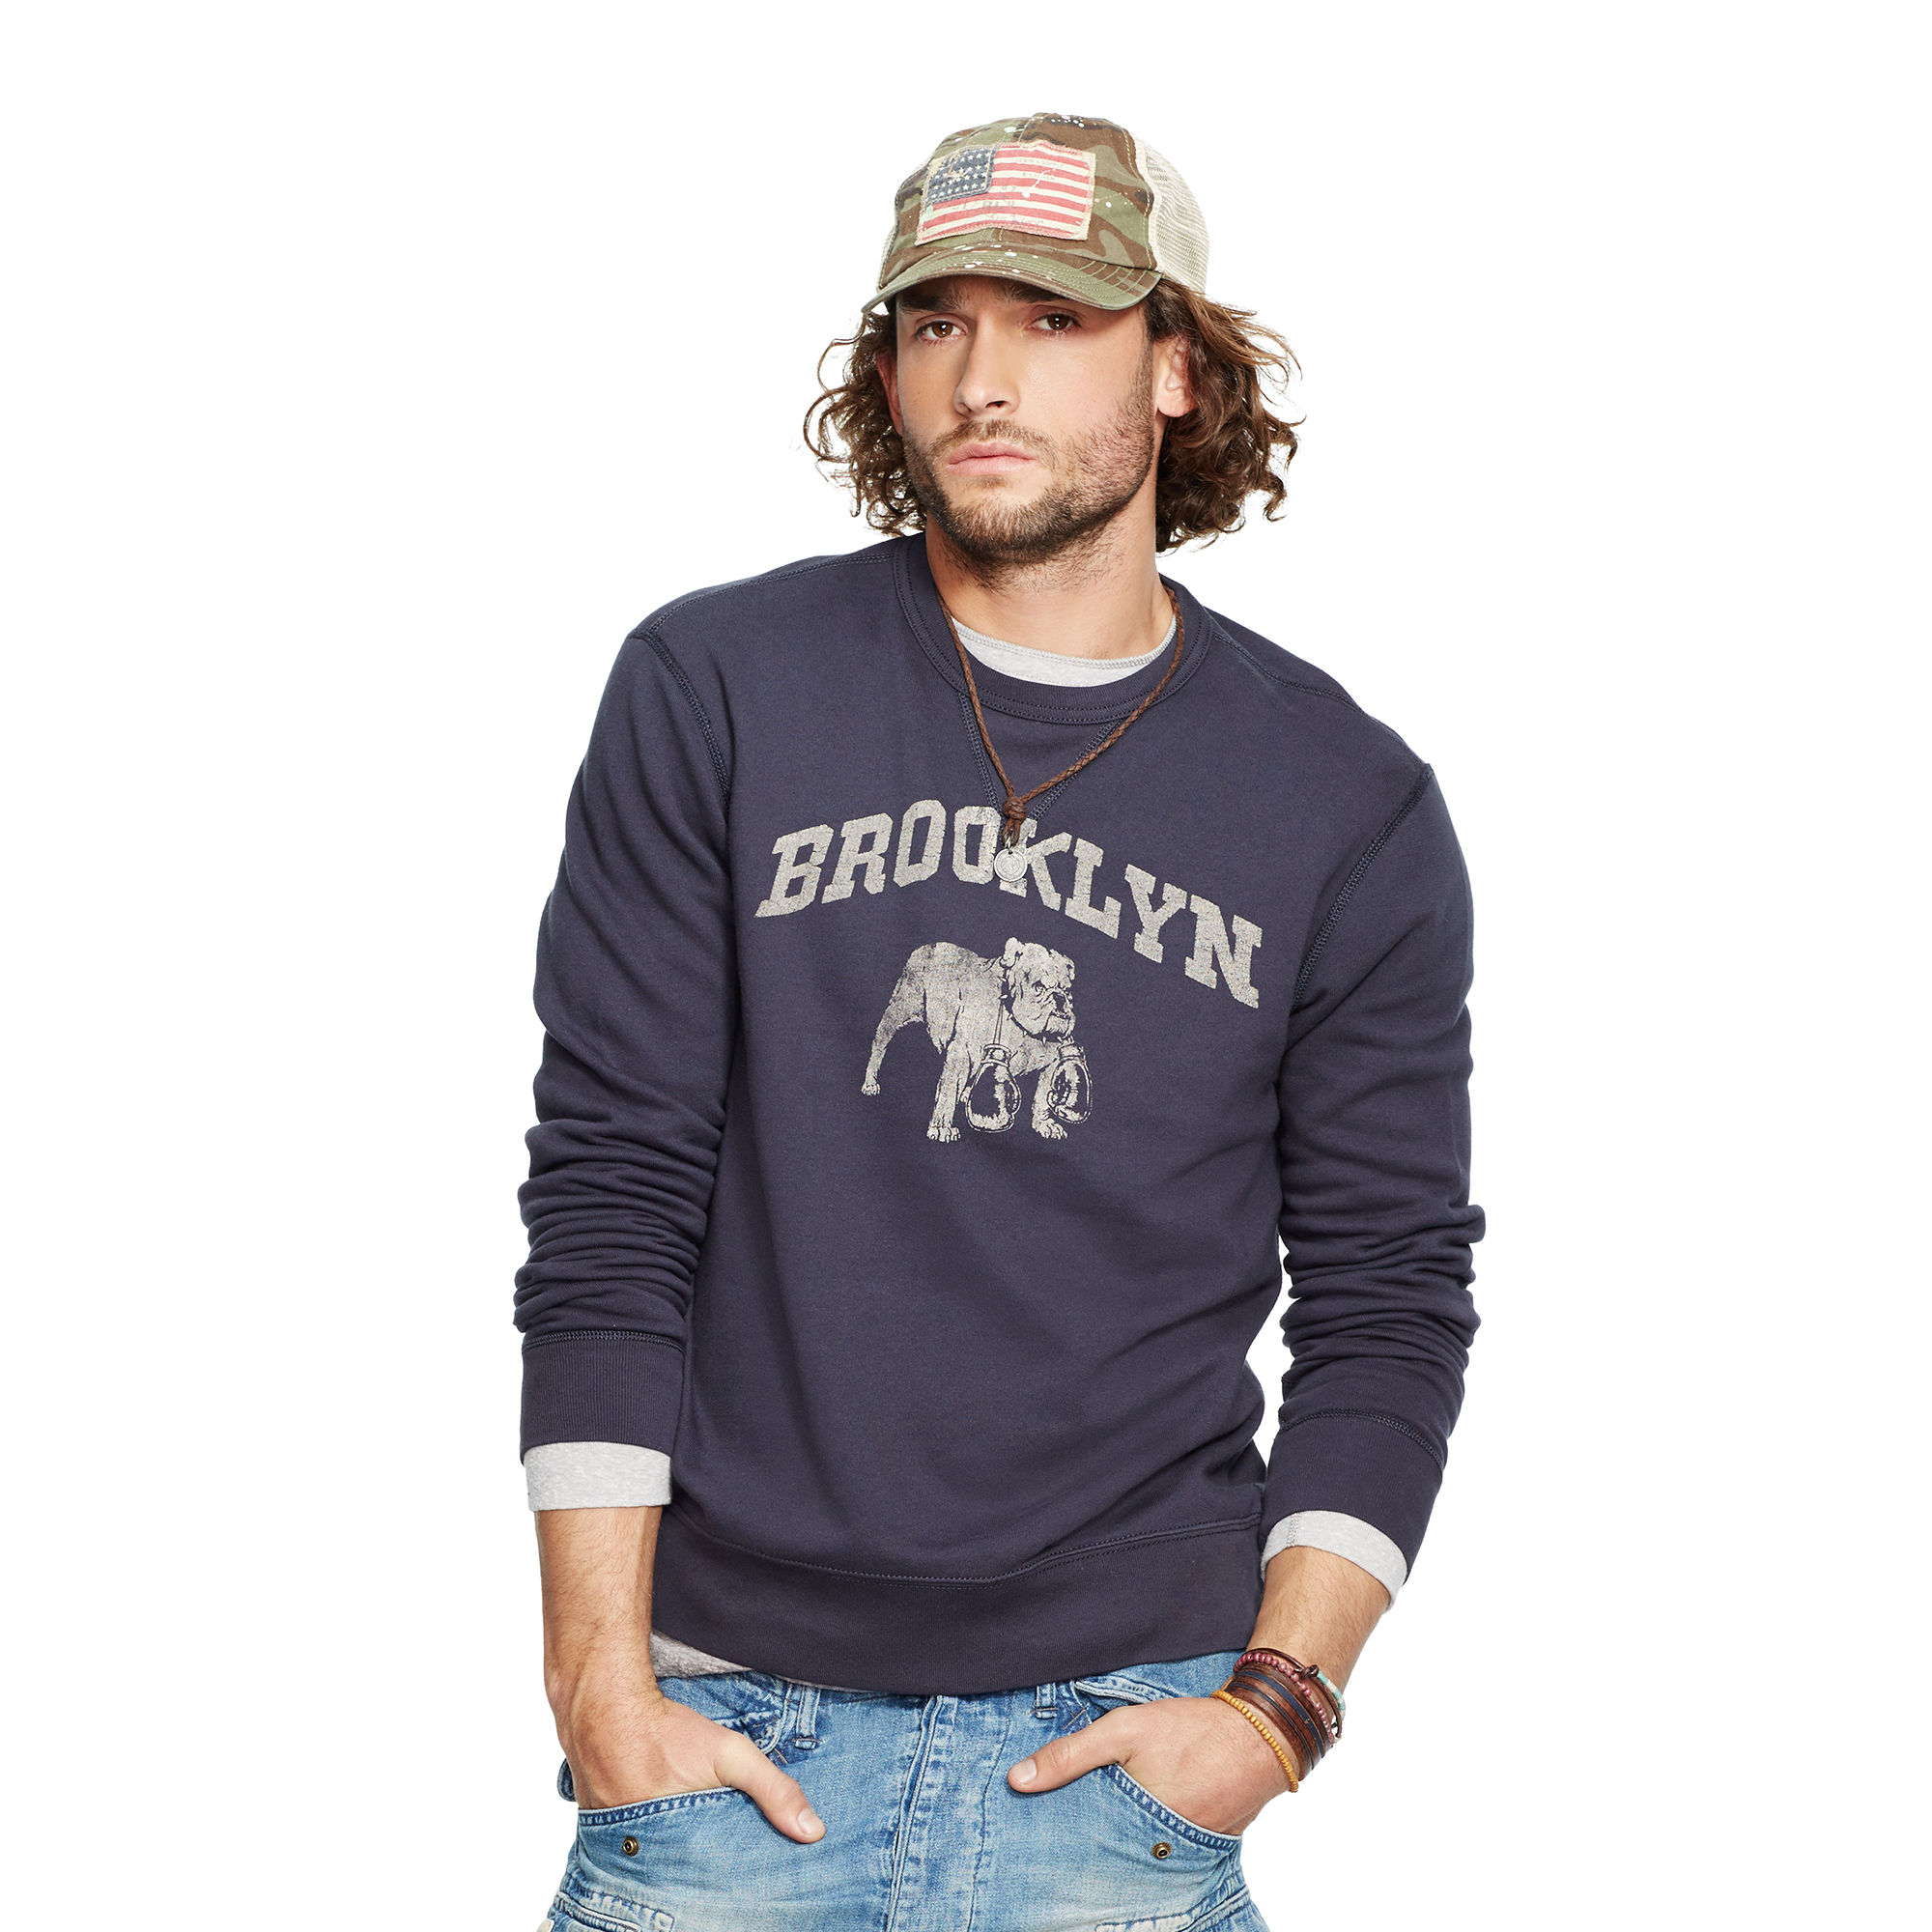 denim supply ralph lauren terry graphic sweatshirt in blue for men classic navy lyst. Black Bedroom Furniture Sets. Home Design Ideas